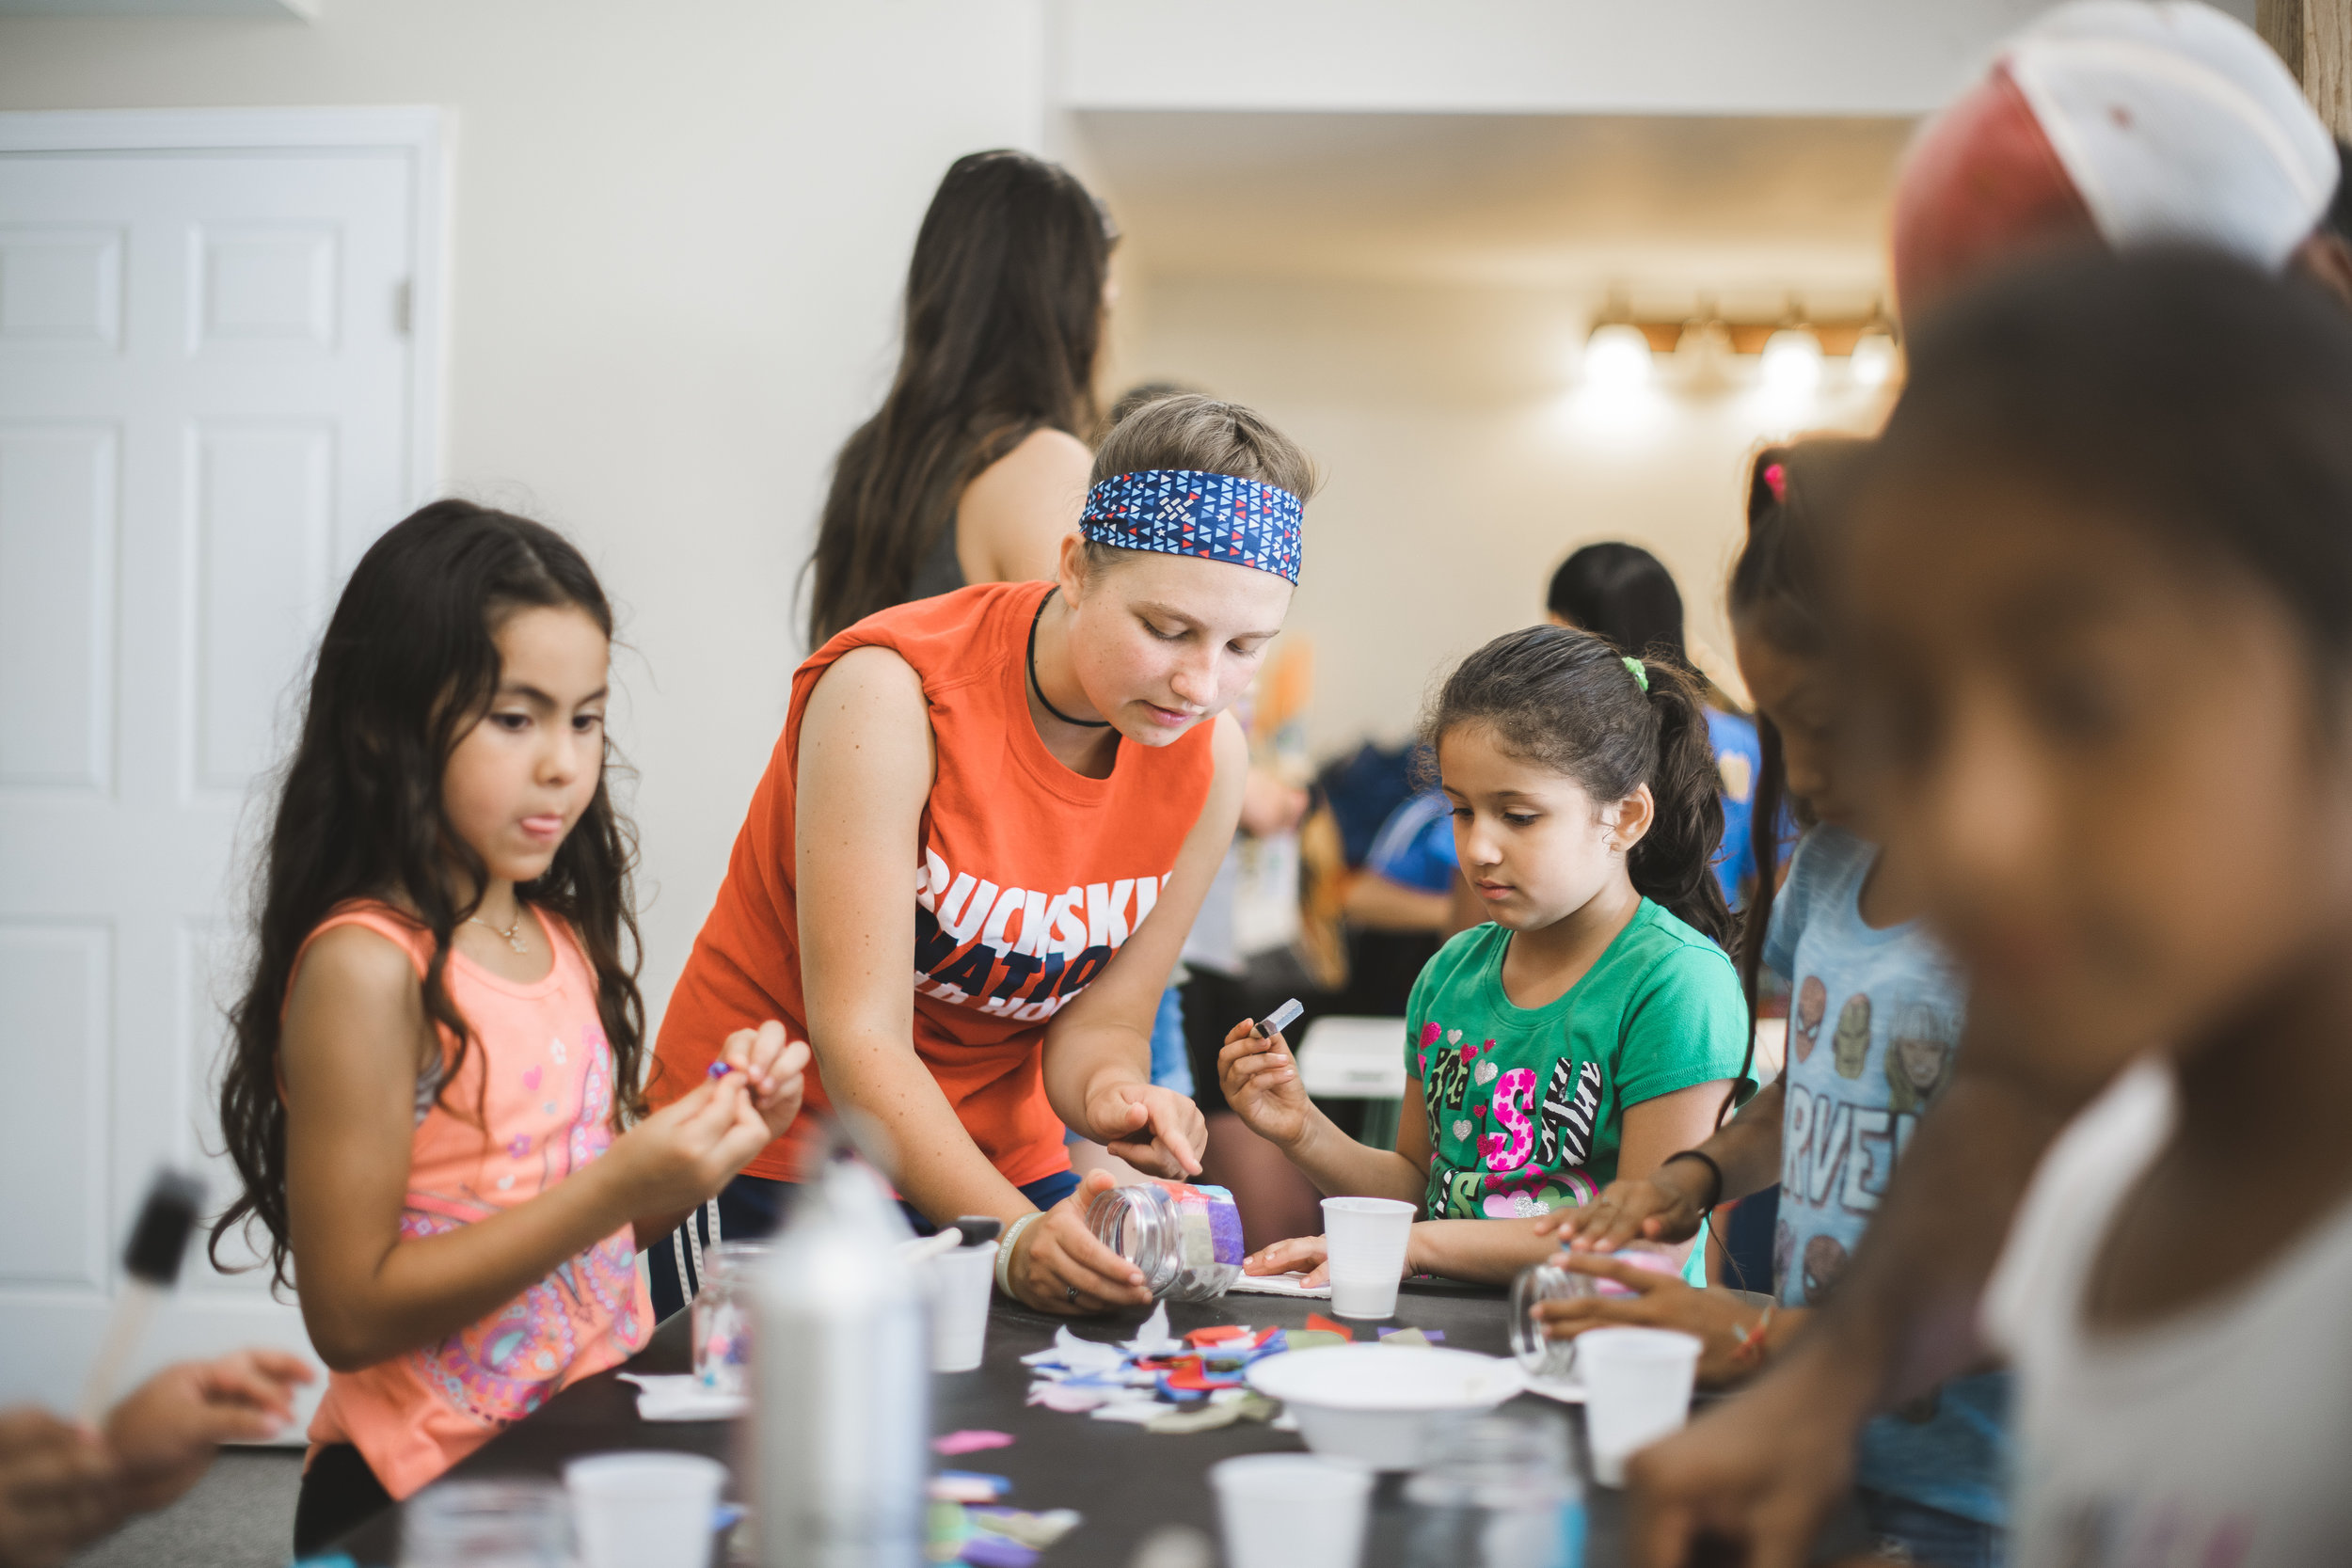 Metzler Mennonite students assisted in a candle-making workshop for kids at Camp Skillz Madison.